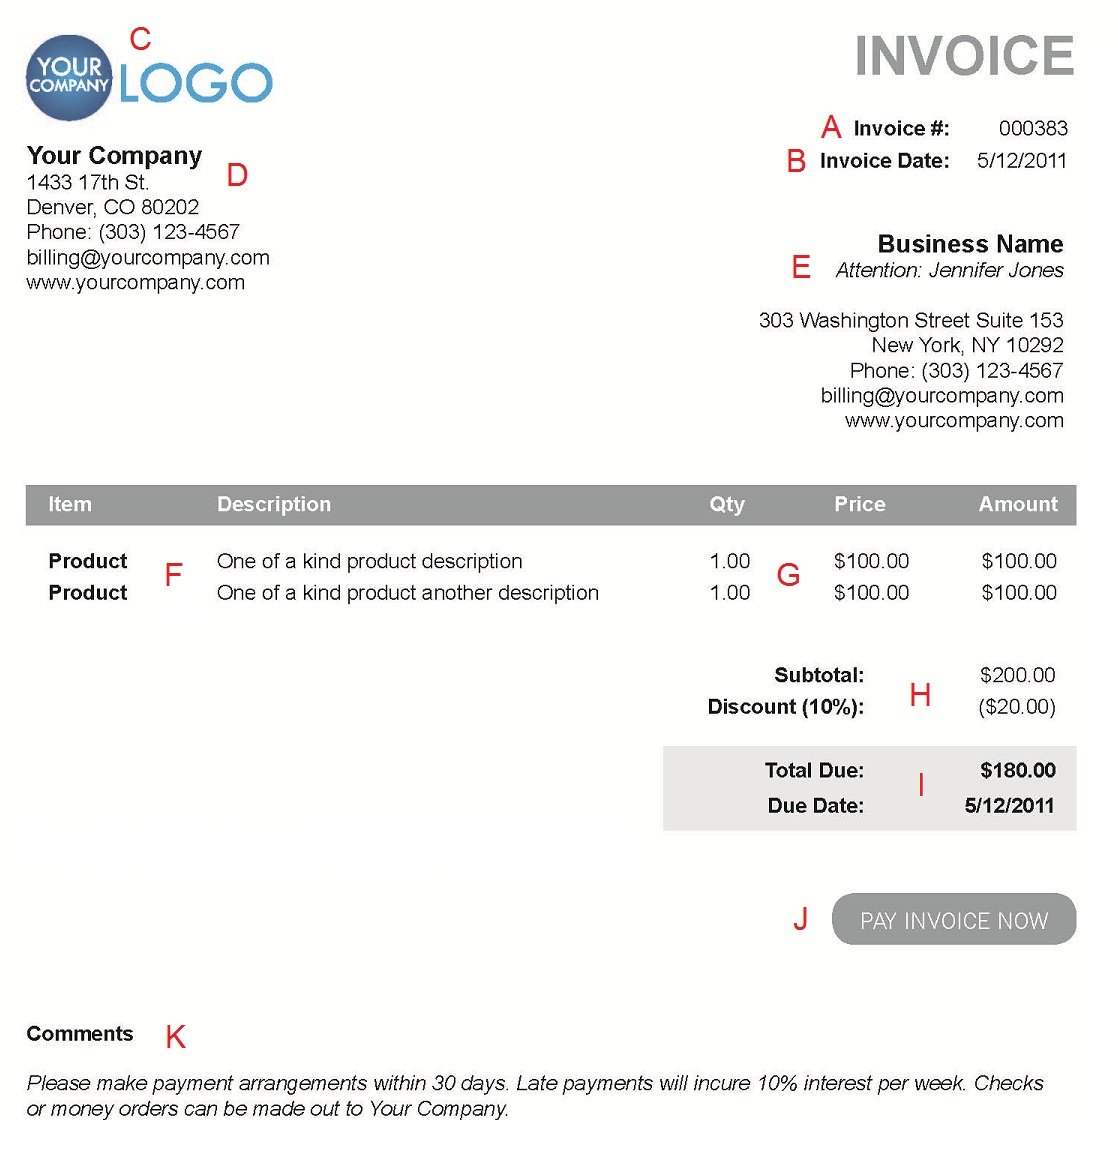 Ultrablogus  Nice The  Different Sections Of An Electronic Payment Invoice With Fascinating A  With Delectable Auto Repair Invoice Software Also Factory Invoice Vs Msrp In Addition Free Word Invoice Template And Pay Invoice As Well As New Car Invoice Additionally Create An Invoice In Word From Paysimplecom With Ultrablogus  Fascinating The  Different Sections Of An Electronic Payment Invoice With Delectable A  And Nice Auto Repair Invoice Software Also Factory Invoice Vs Msrp In Addition Free Word Invoice Template From Paysimplecom